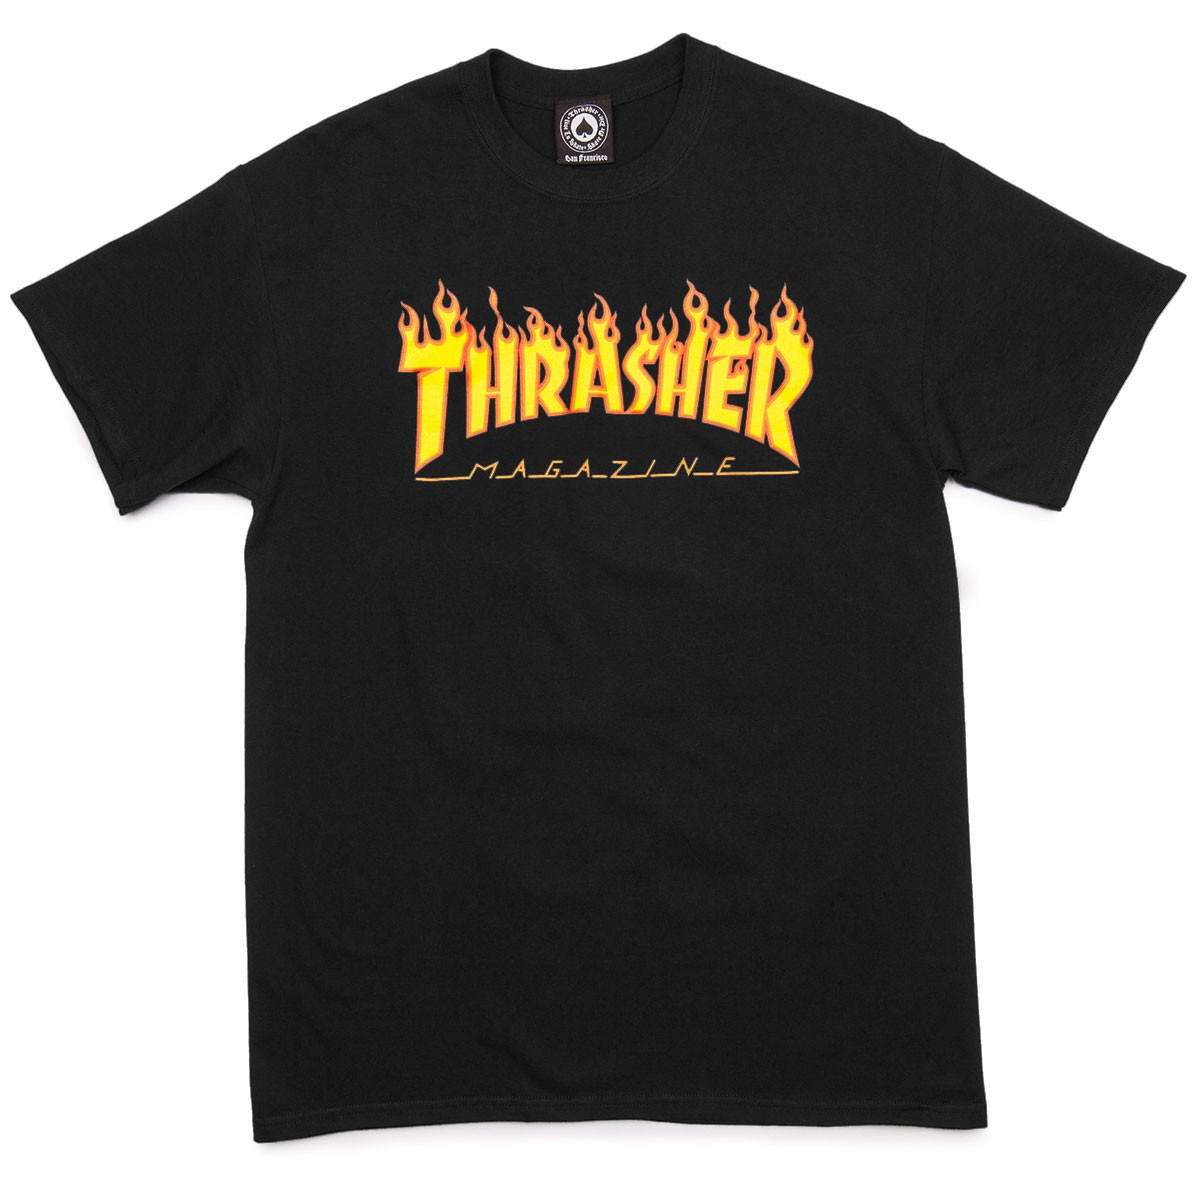 4614b82f5b0b Thrasher T-Shirts – Short-Sleeve   Long-Sleeve T-Shirts